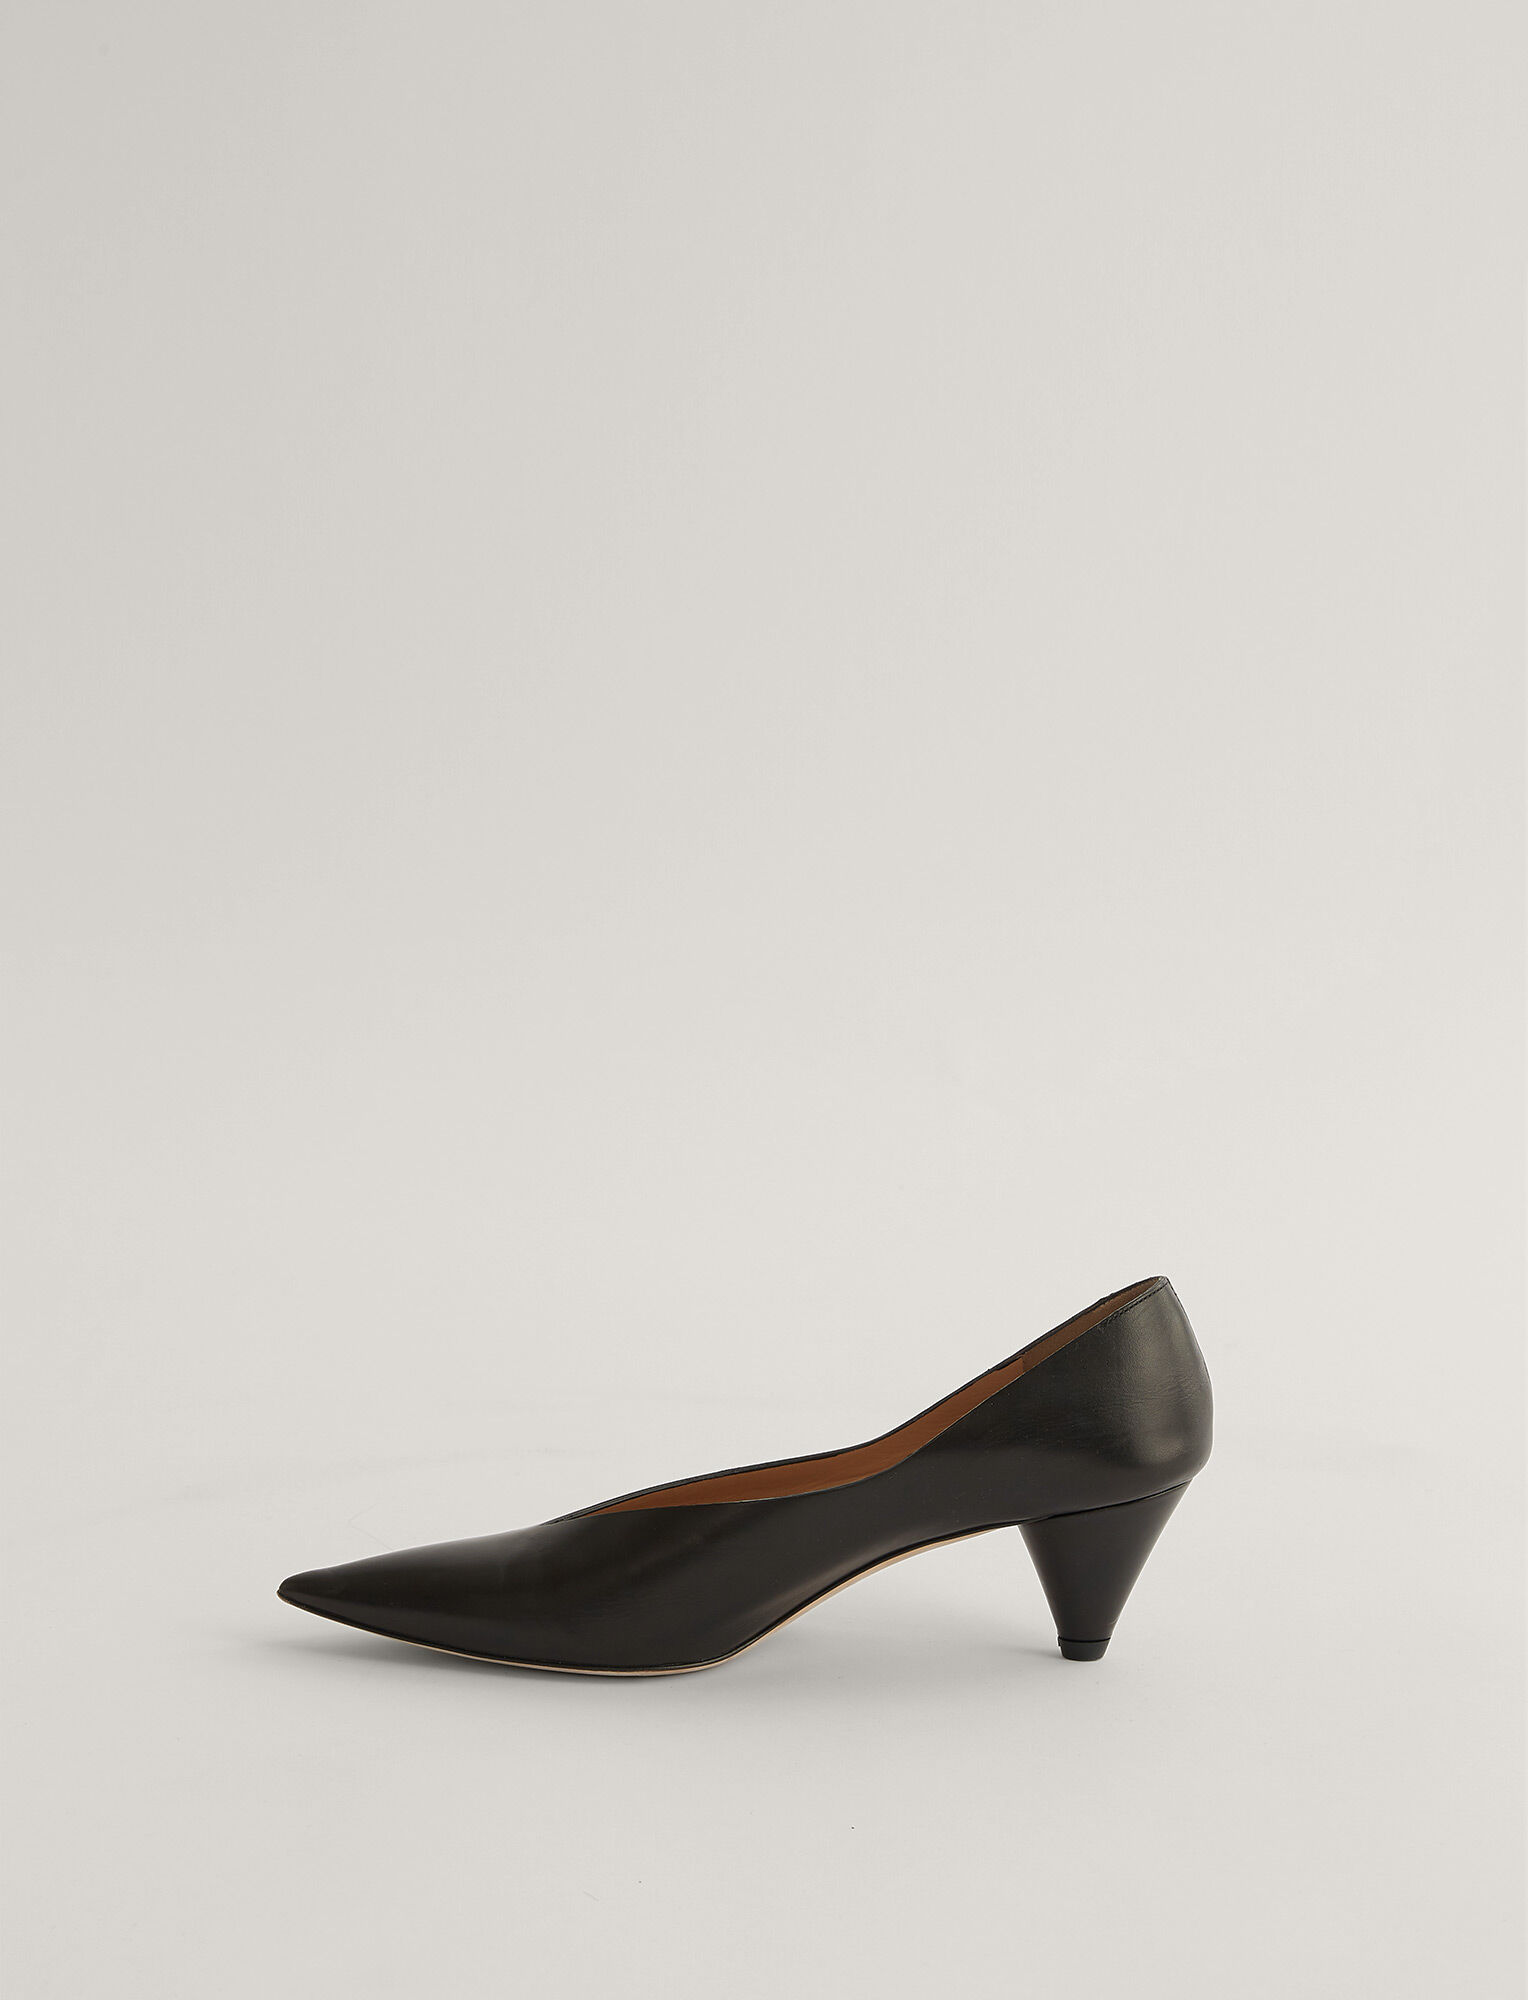 Joseph, Cone Heel Pump, in Black